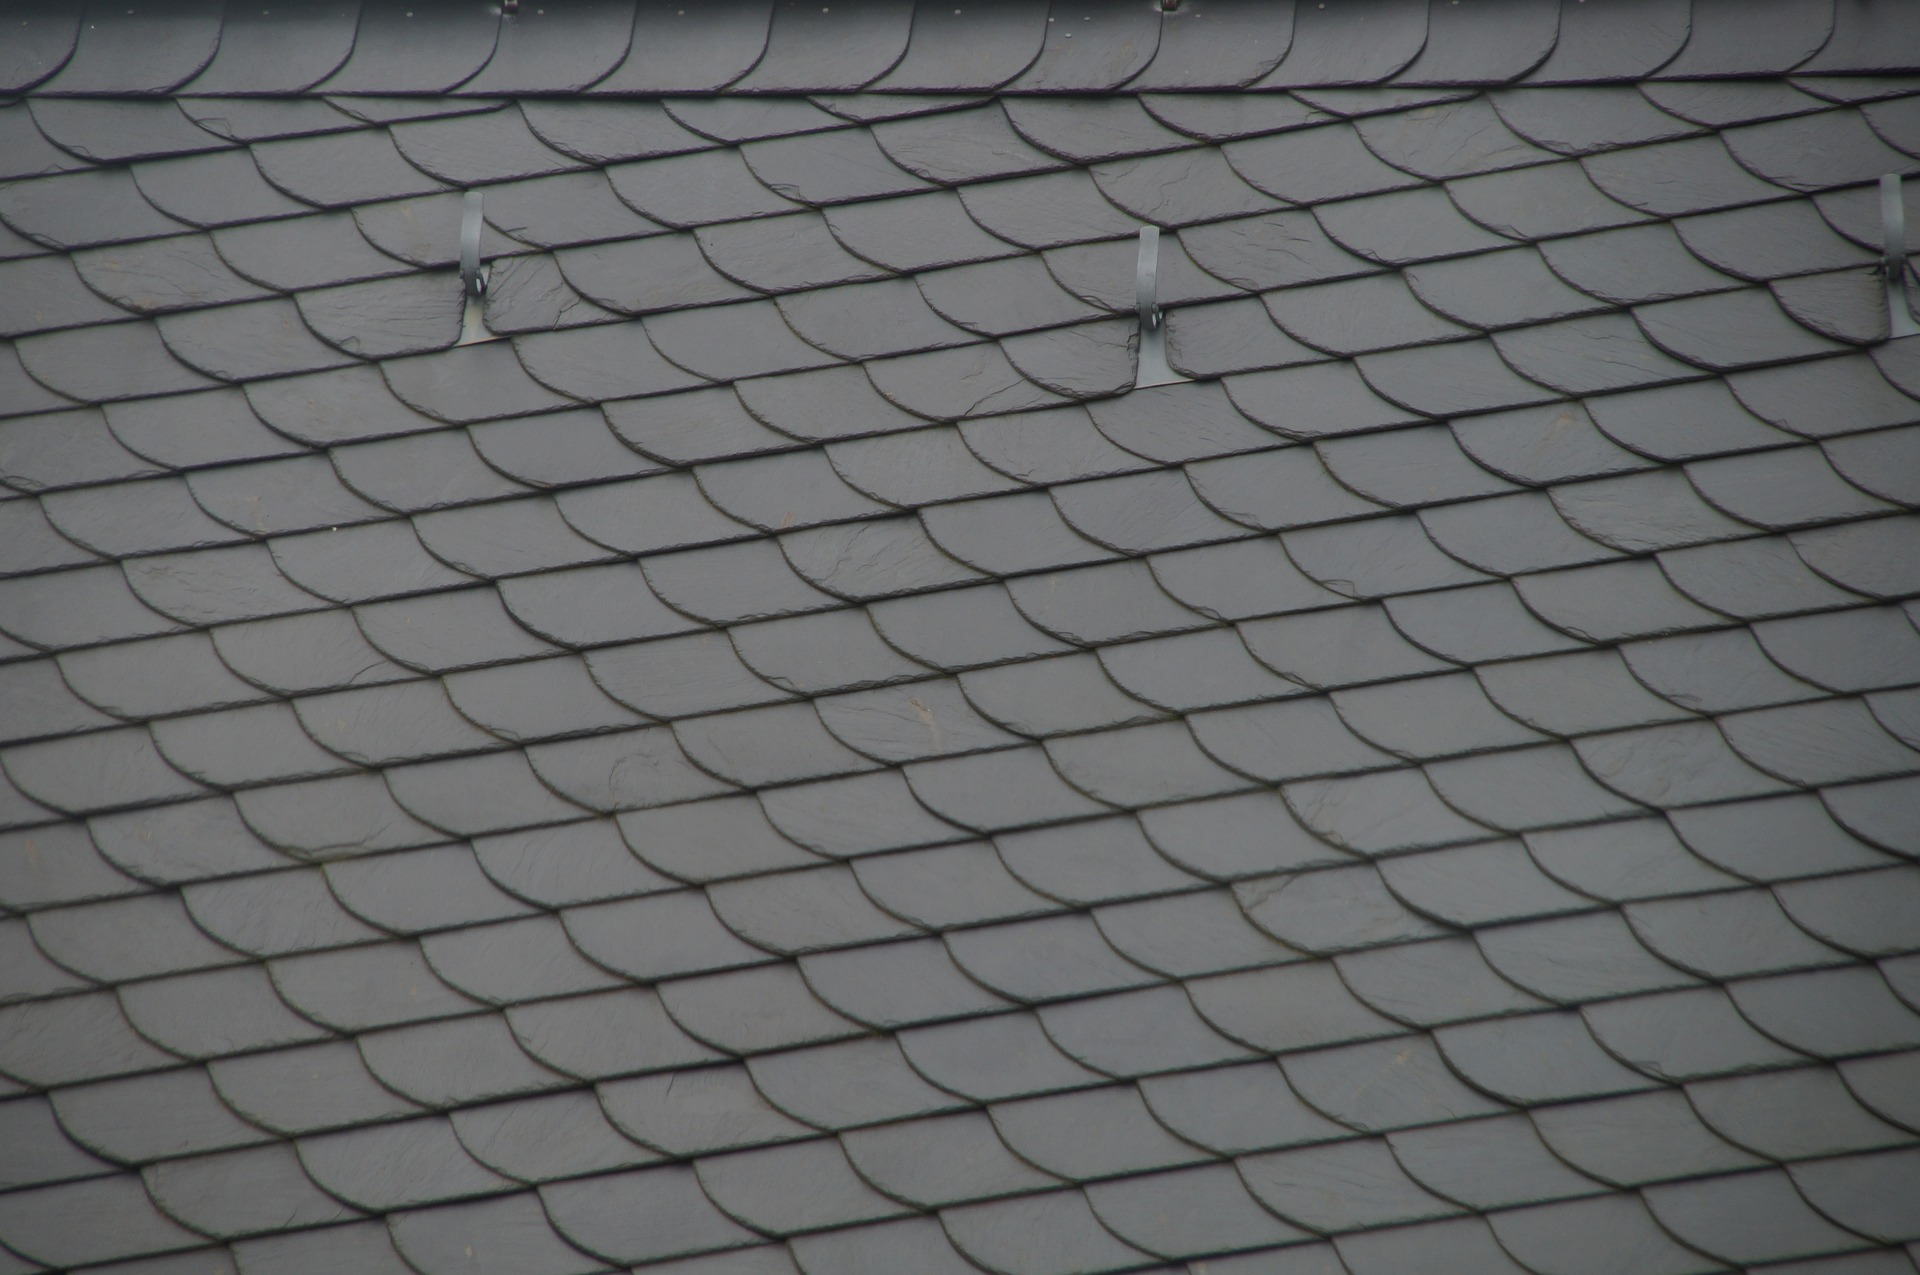 roof-2752935_1920